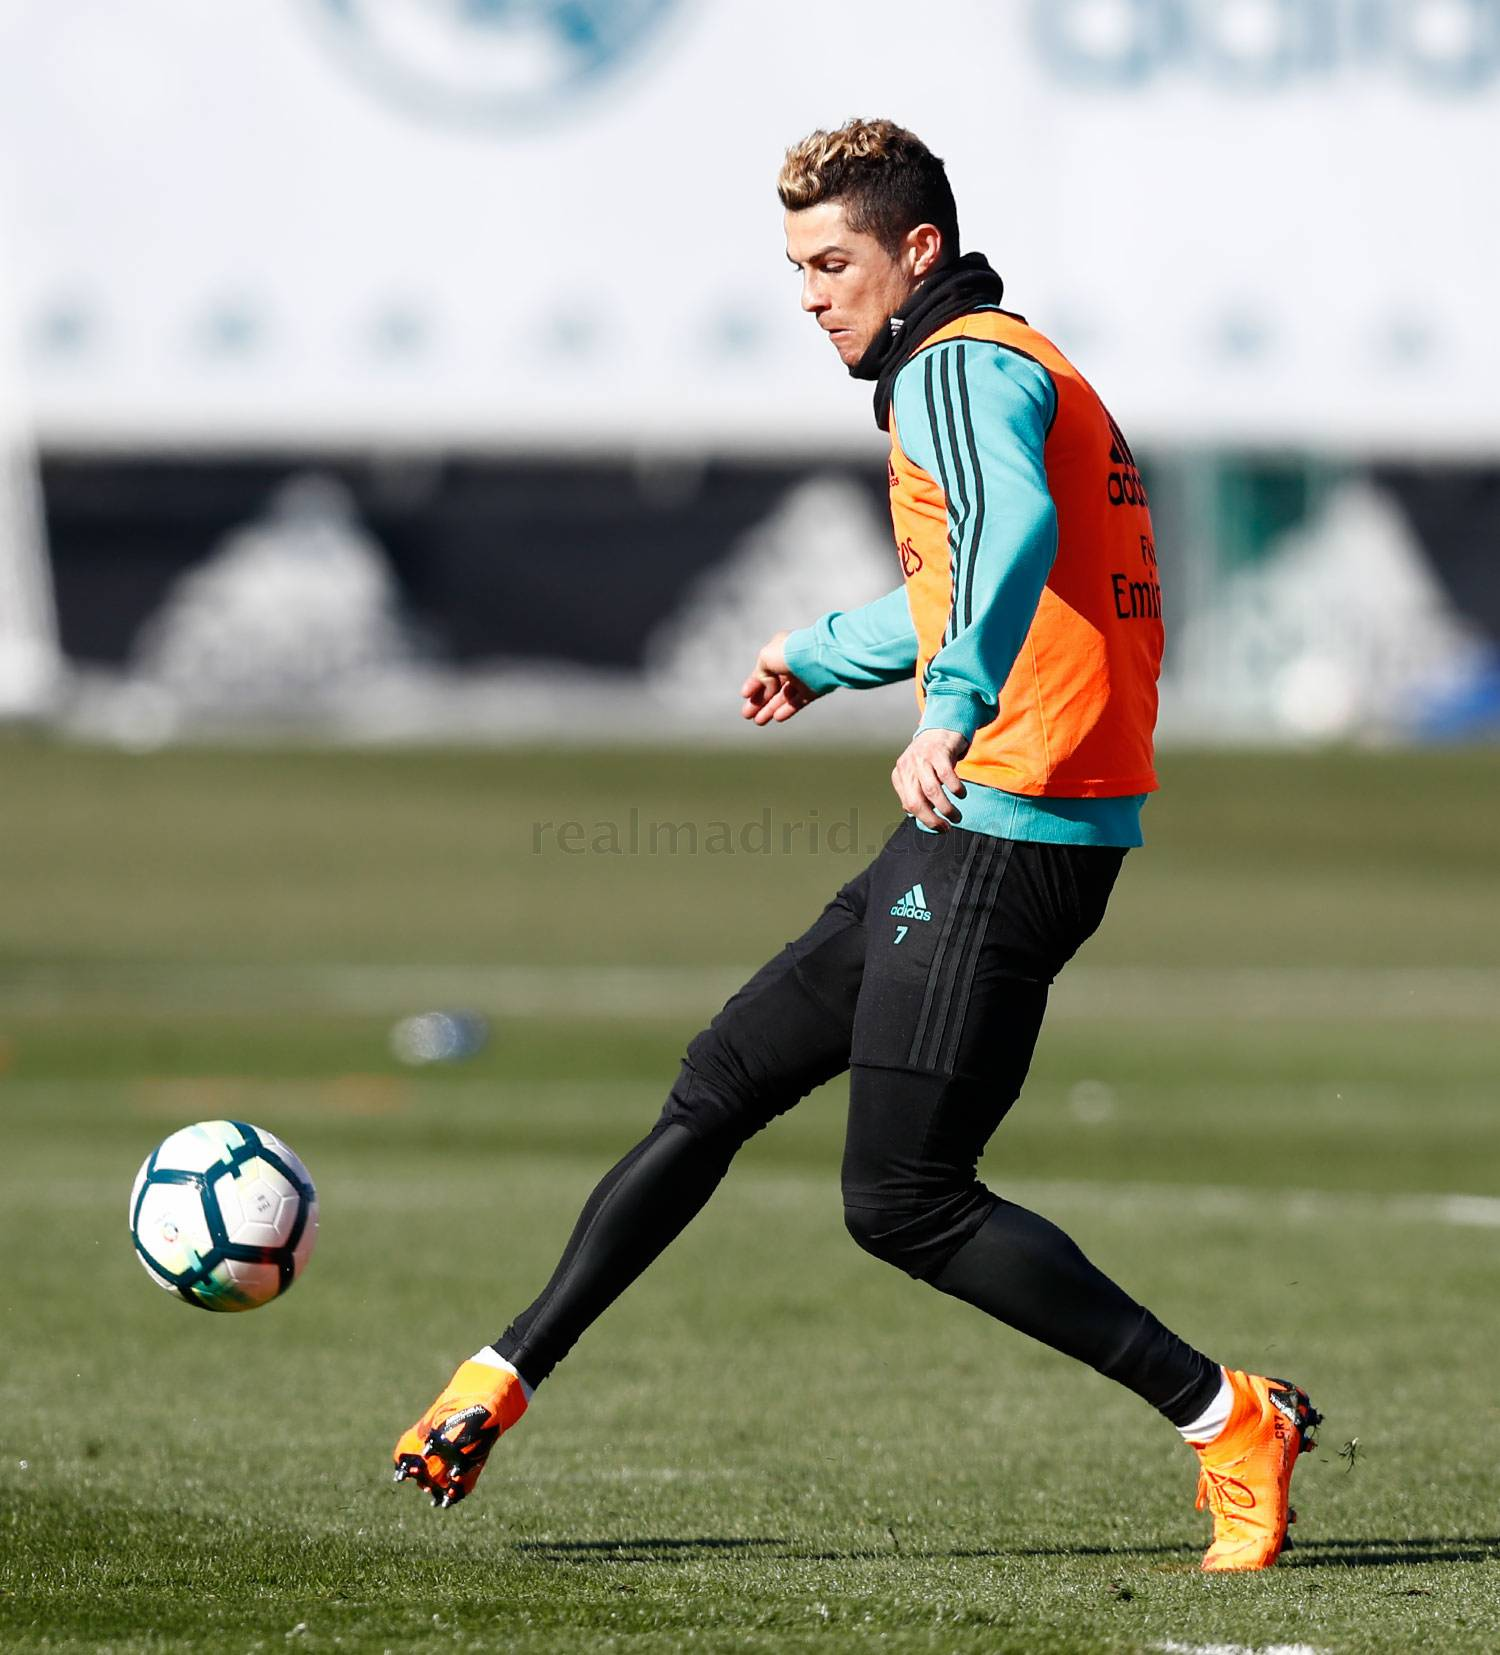 Real Madrid - Entrenamiento del Real Madrid - 08-02-2018